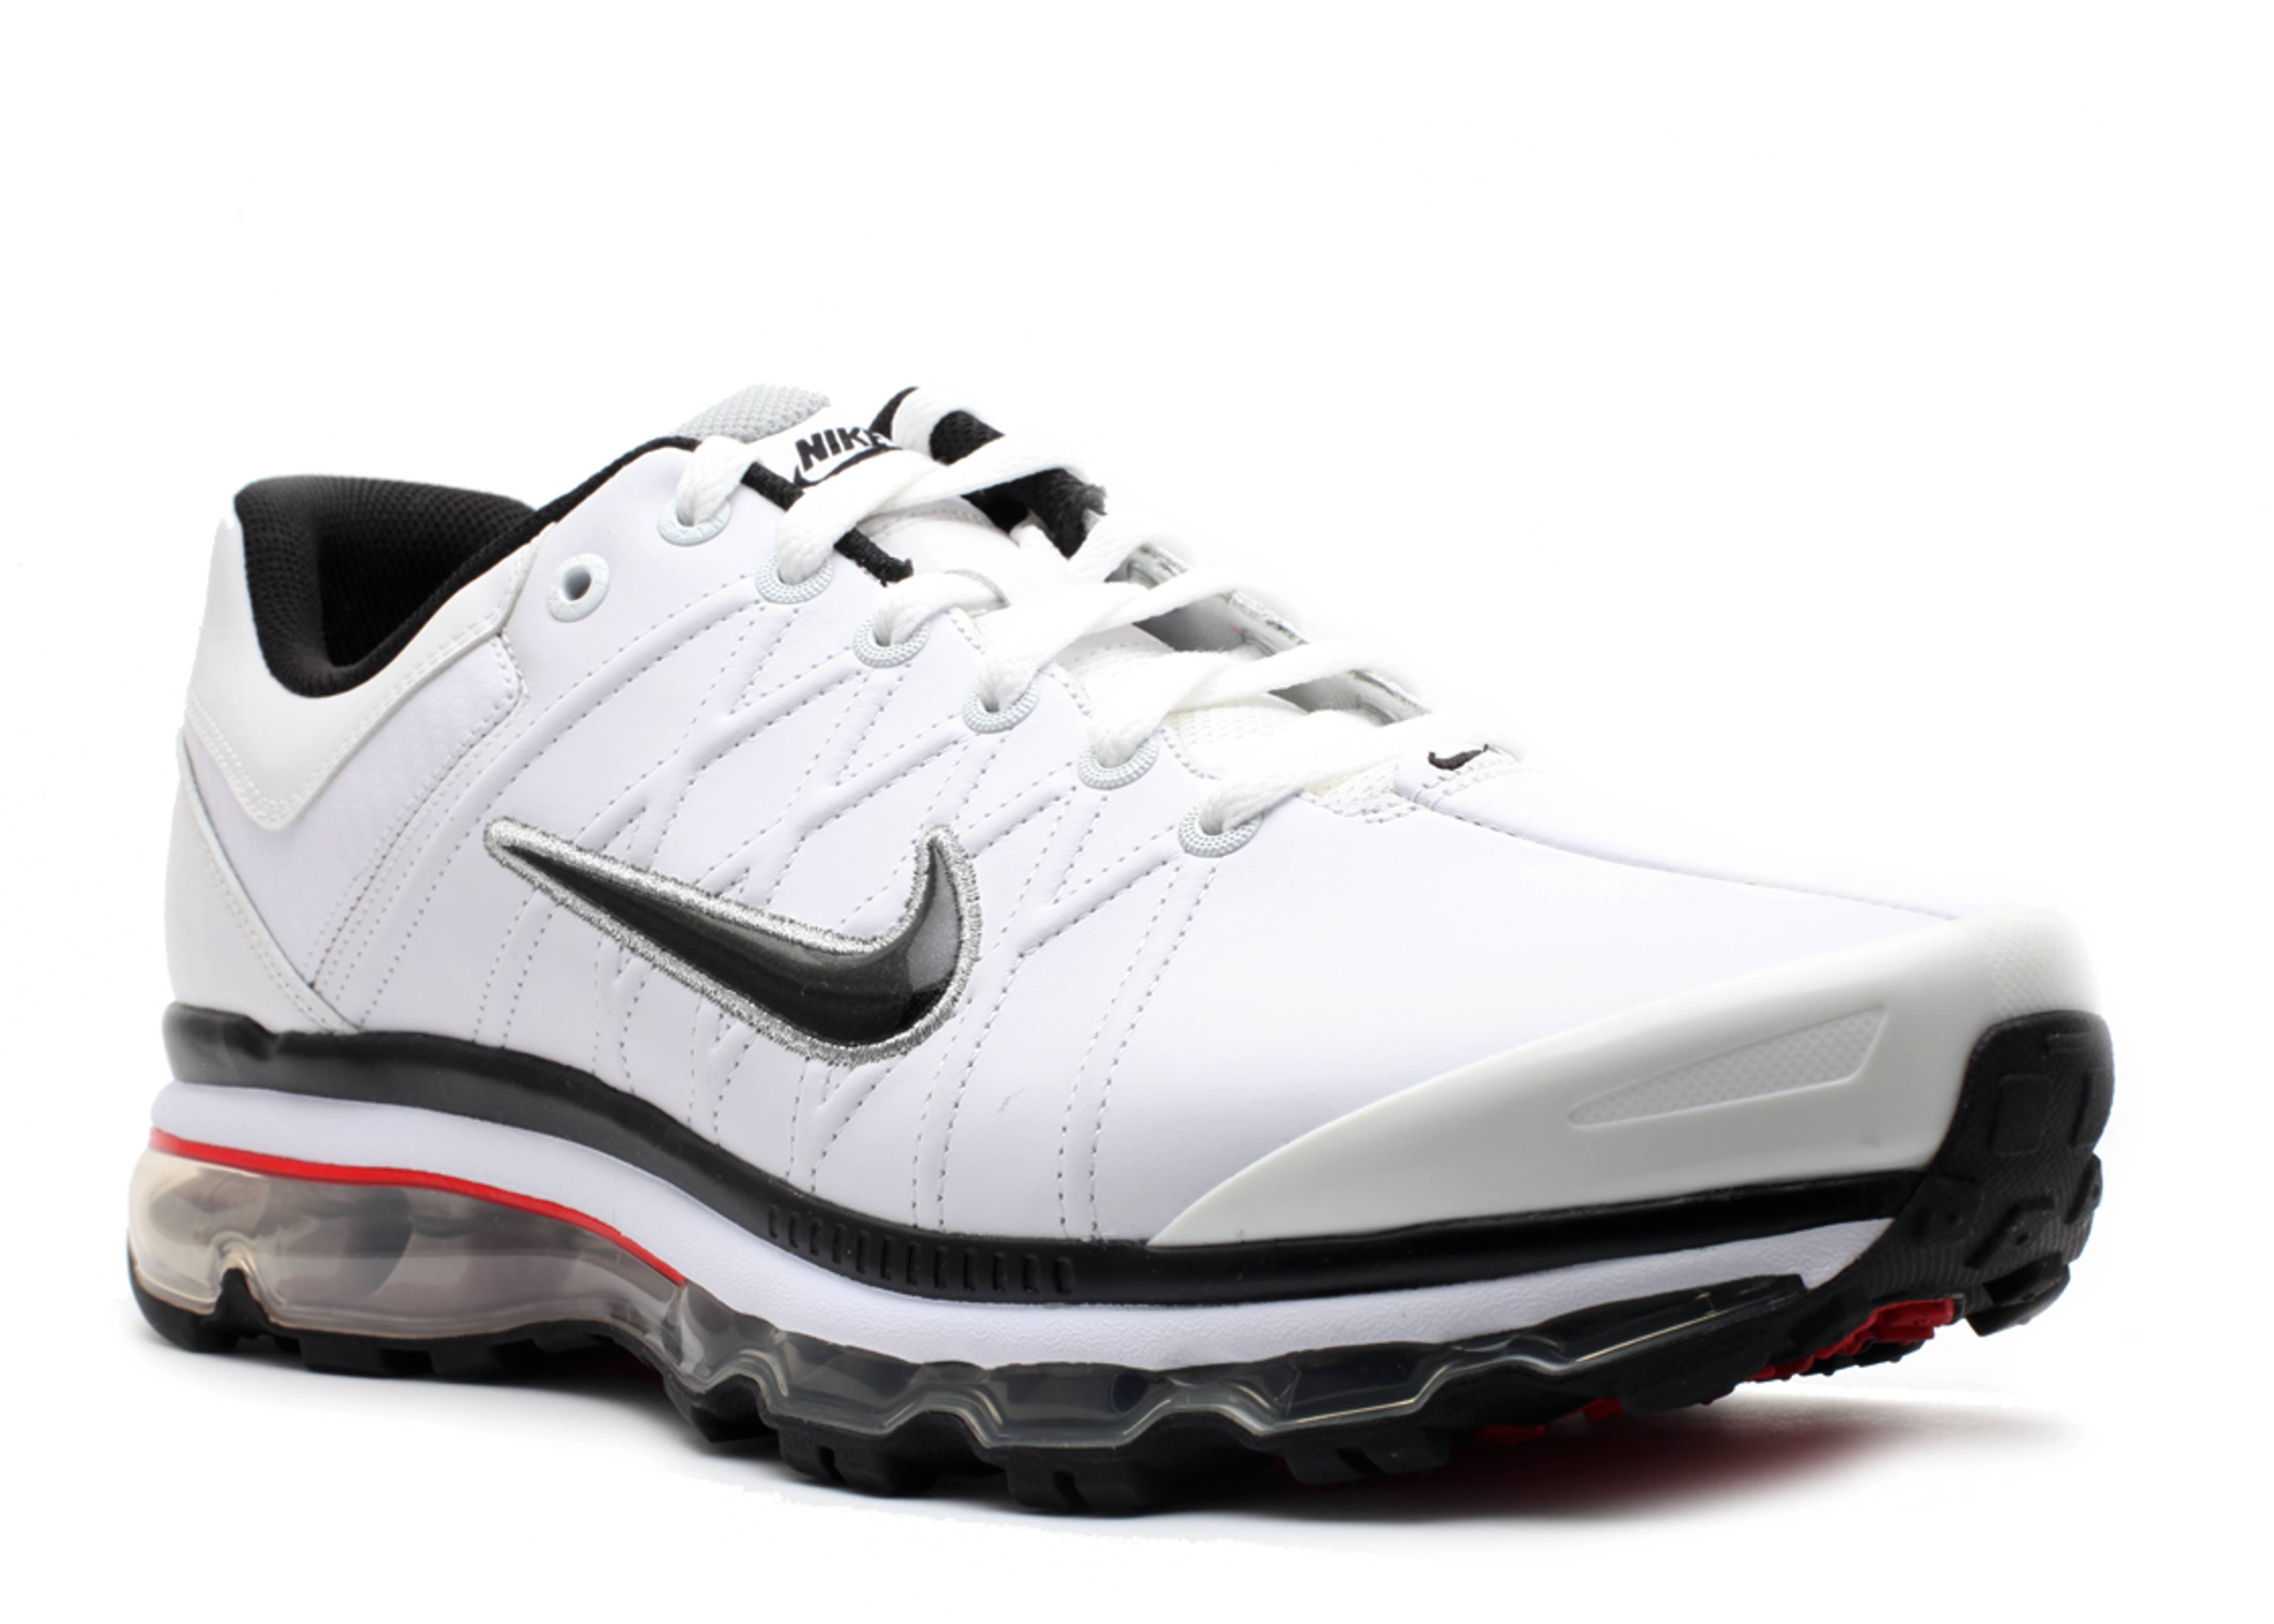 new styles 93a29 4bd0e air max 2009 leather · air max 2009 leather